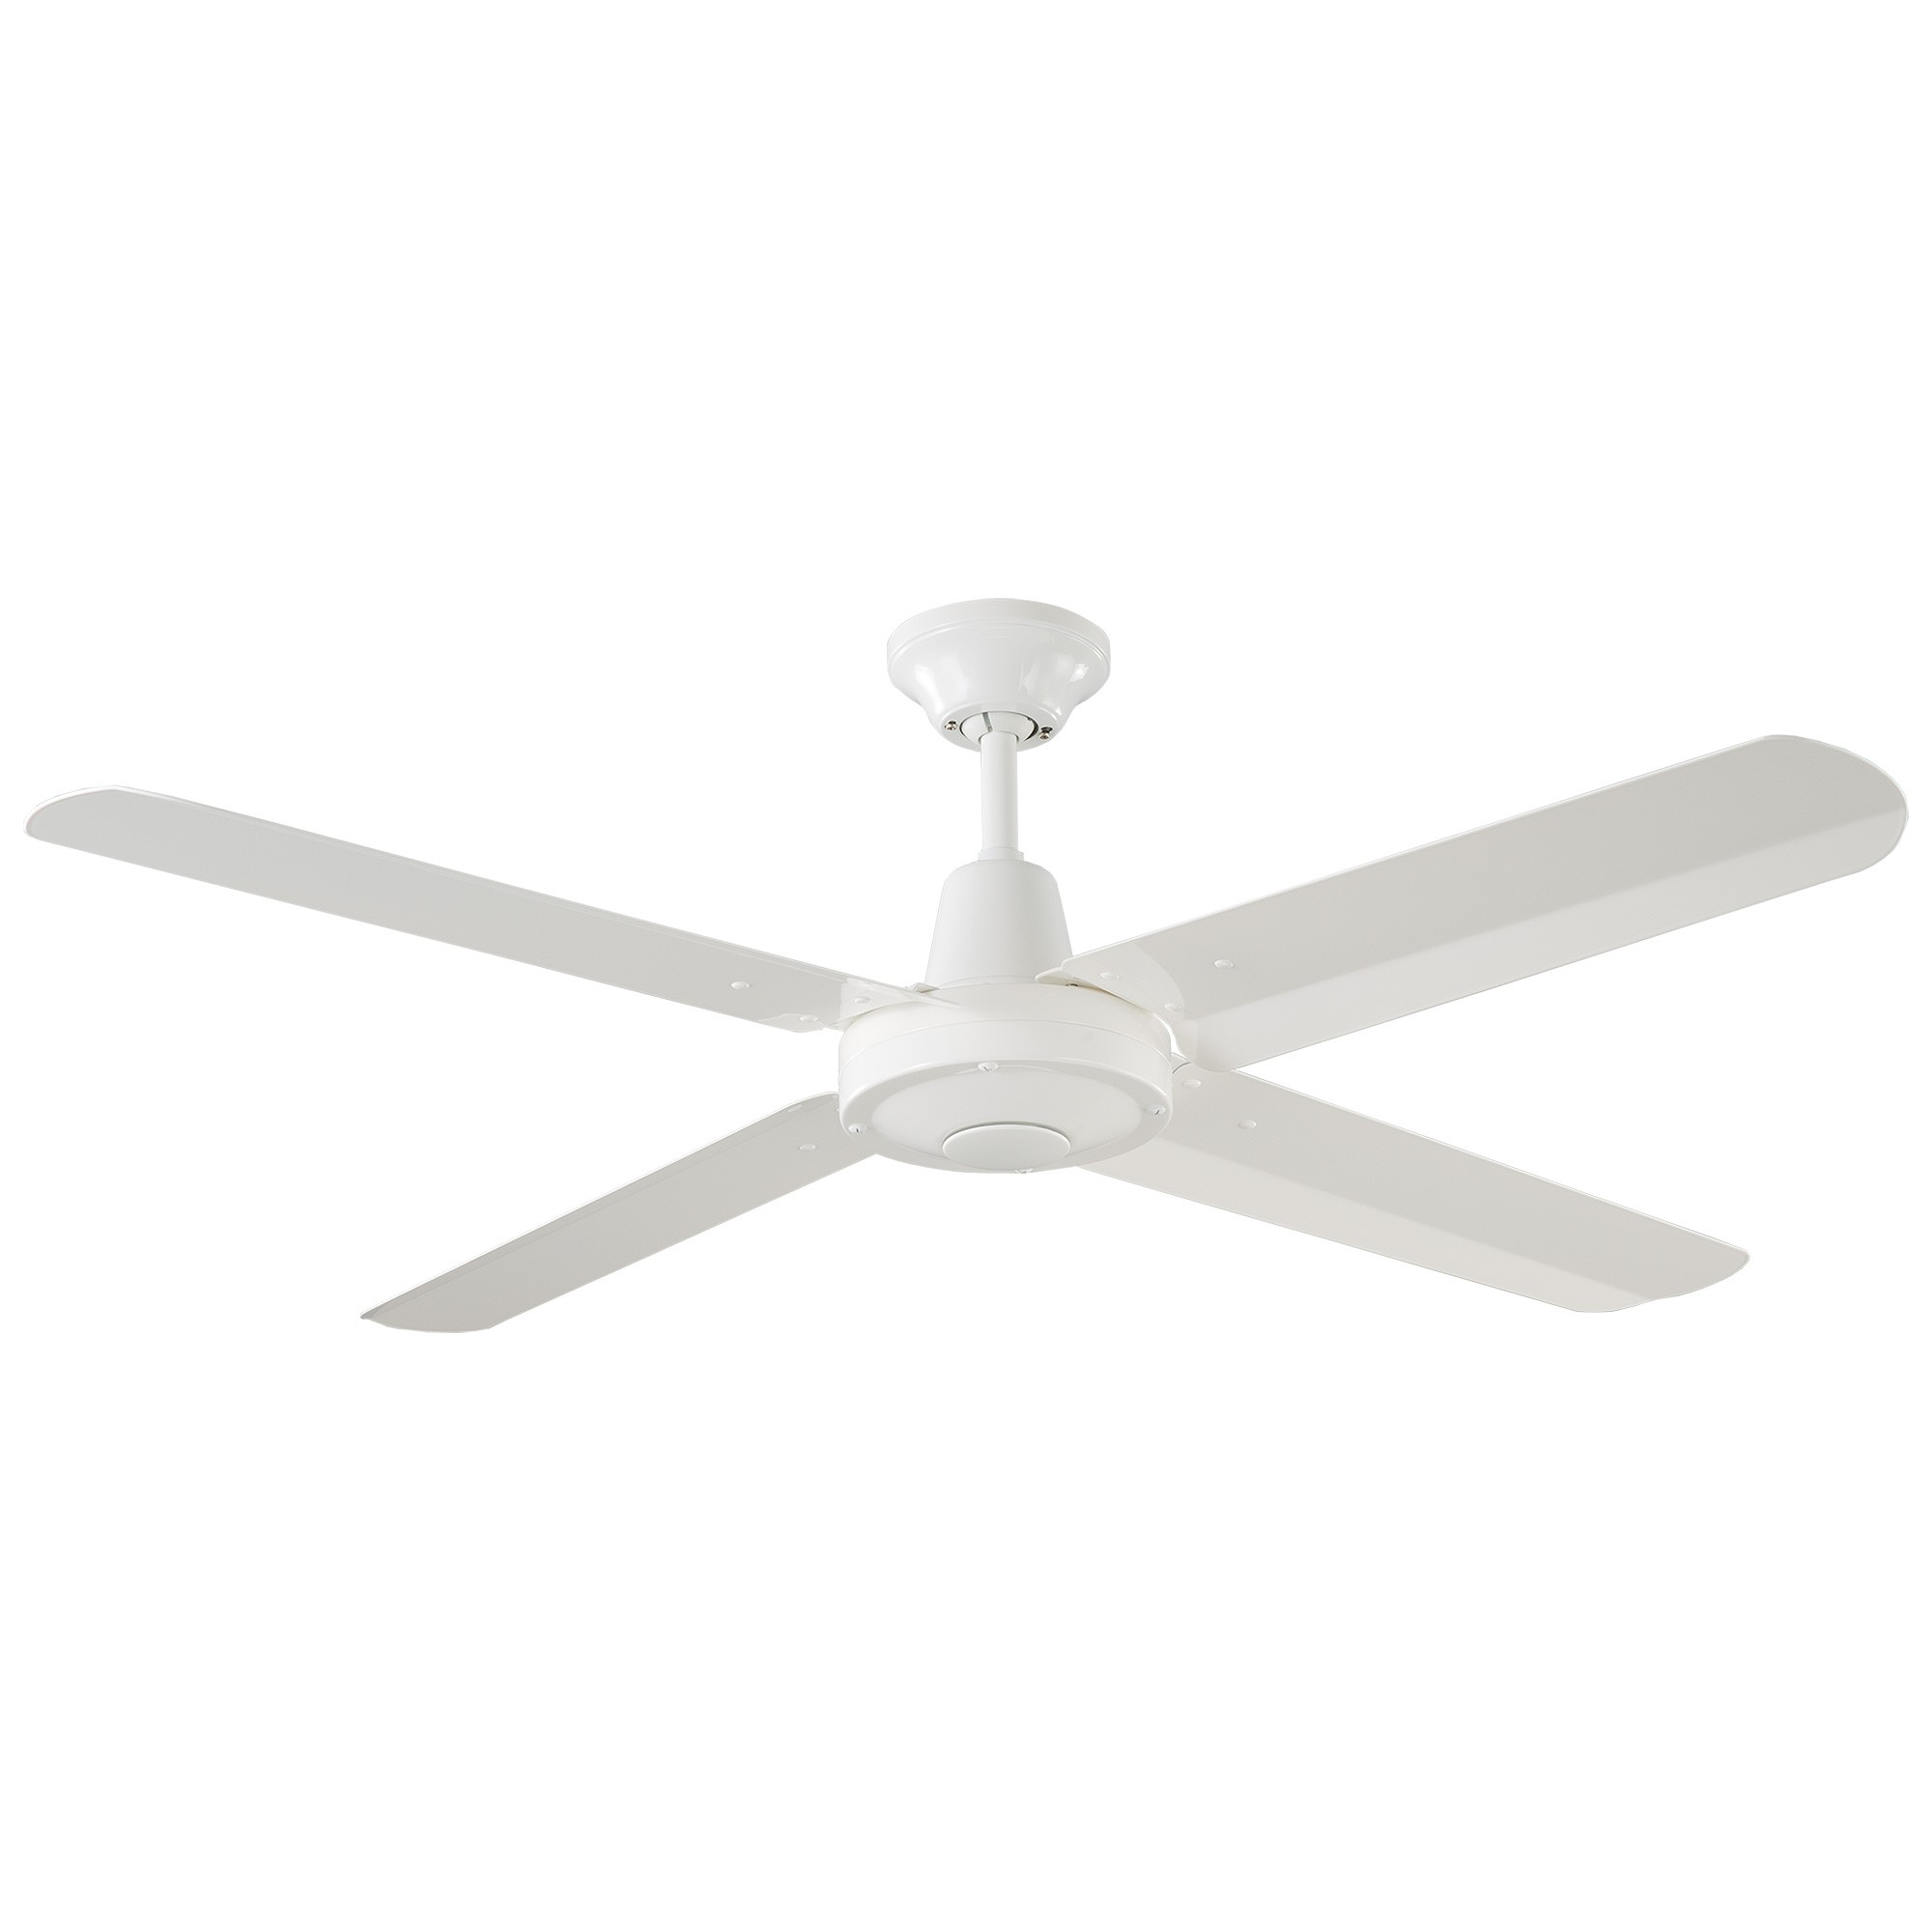 Threesixty Velocity Ceiling Fan, 122cm/48